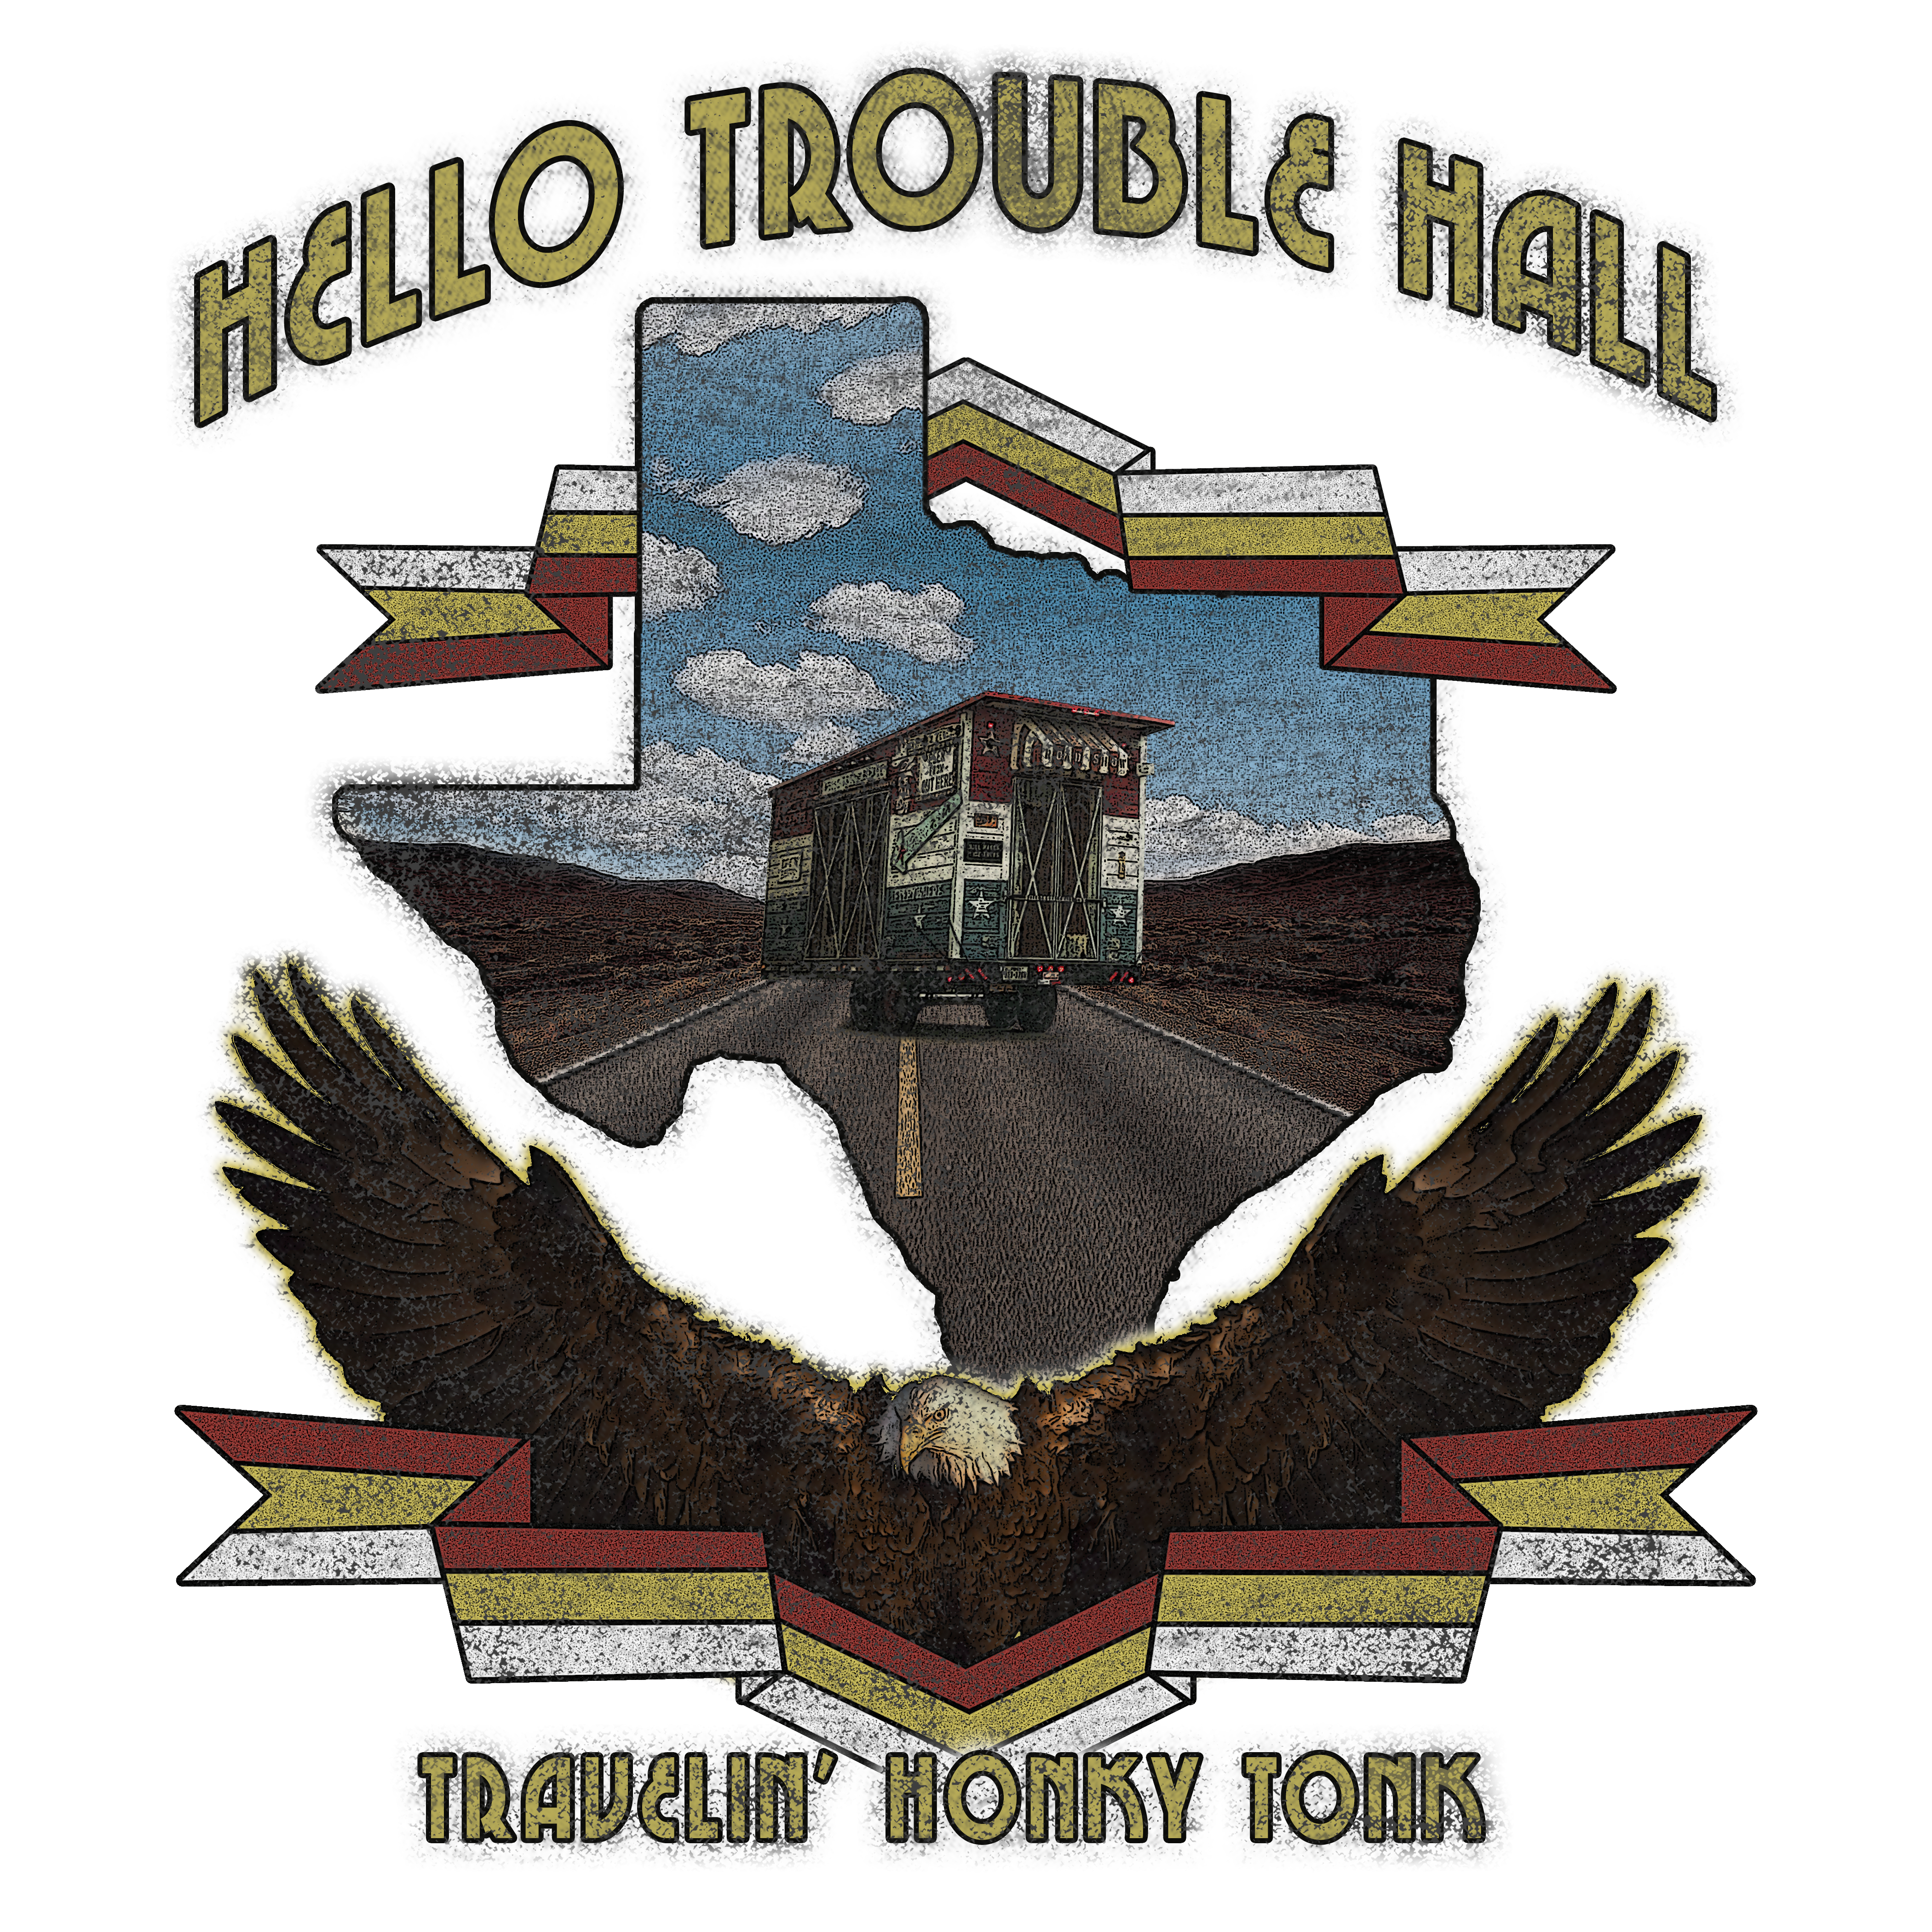 Hello Trouble Hall